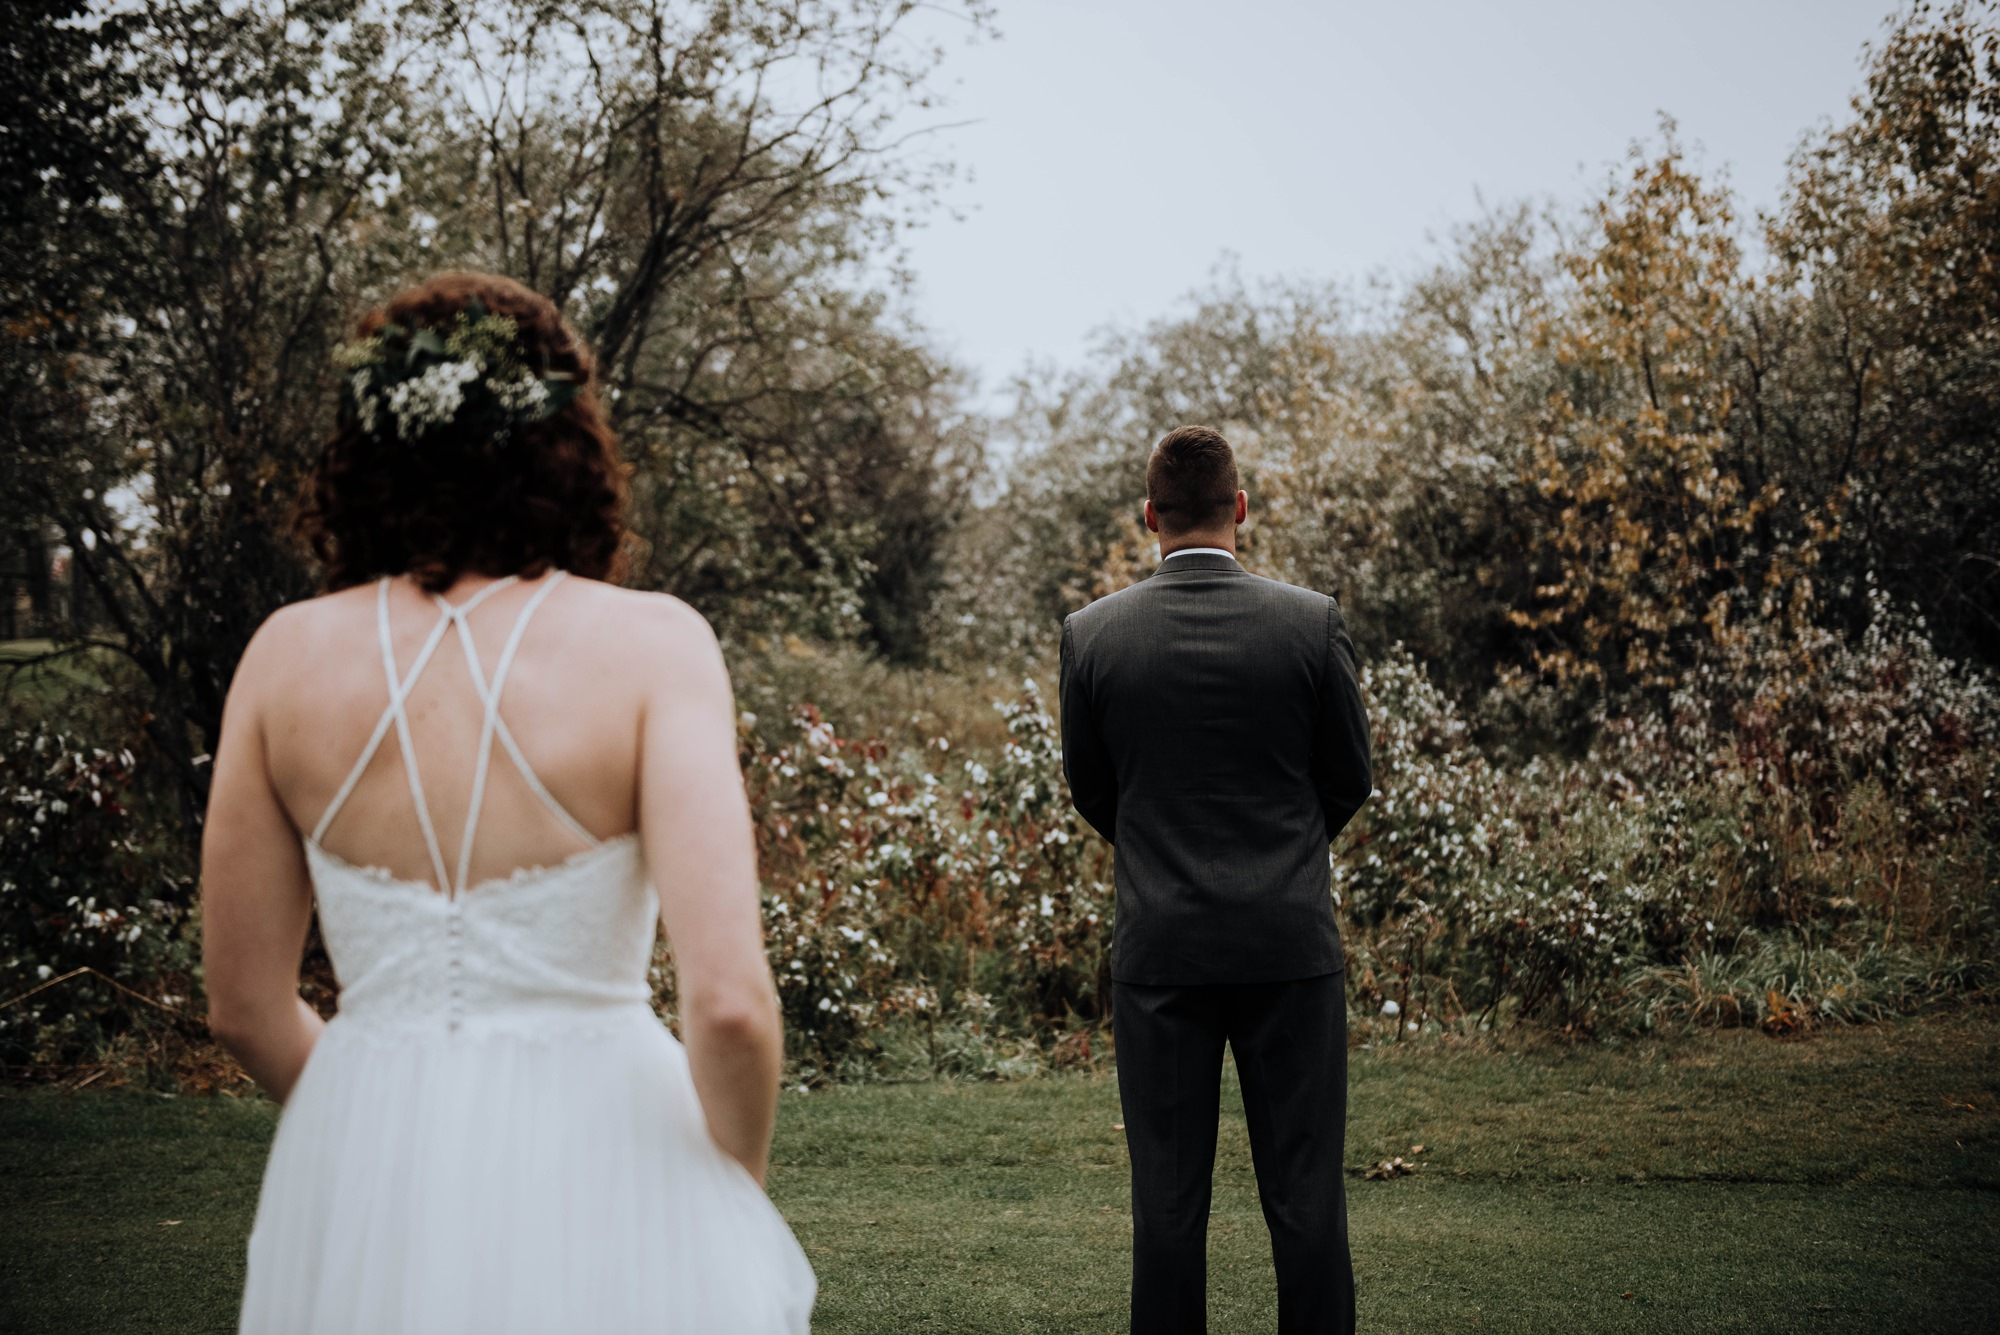 First look between bride and groom in the fall time at stylish modern and classic wedding at Calgary golf club river spirit golf and country club